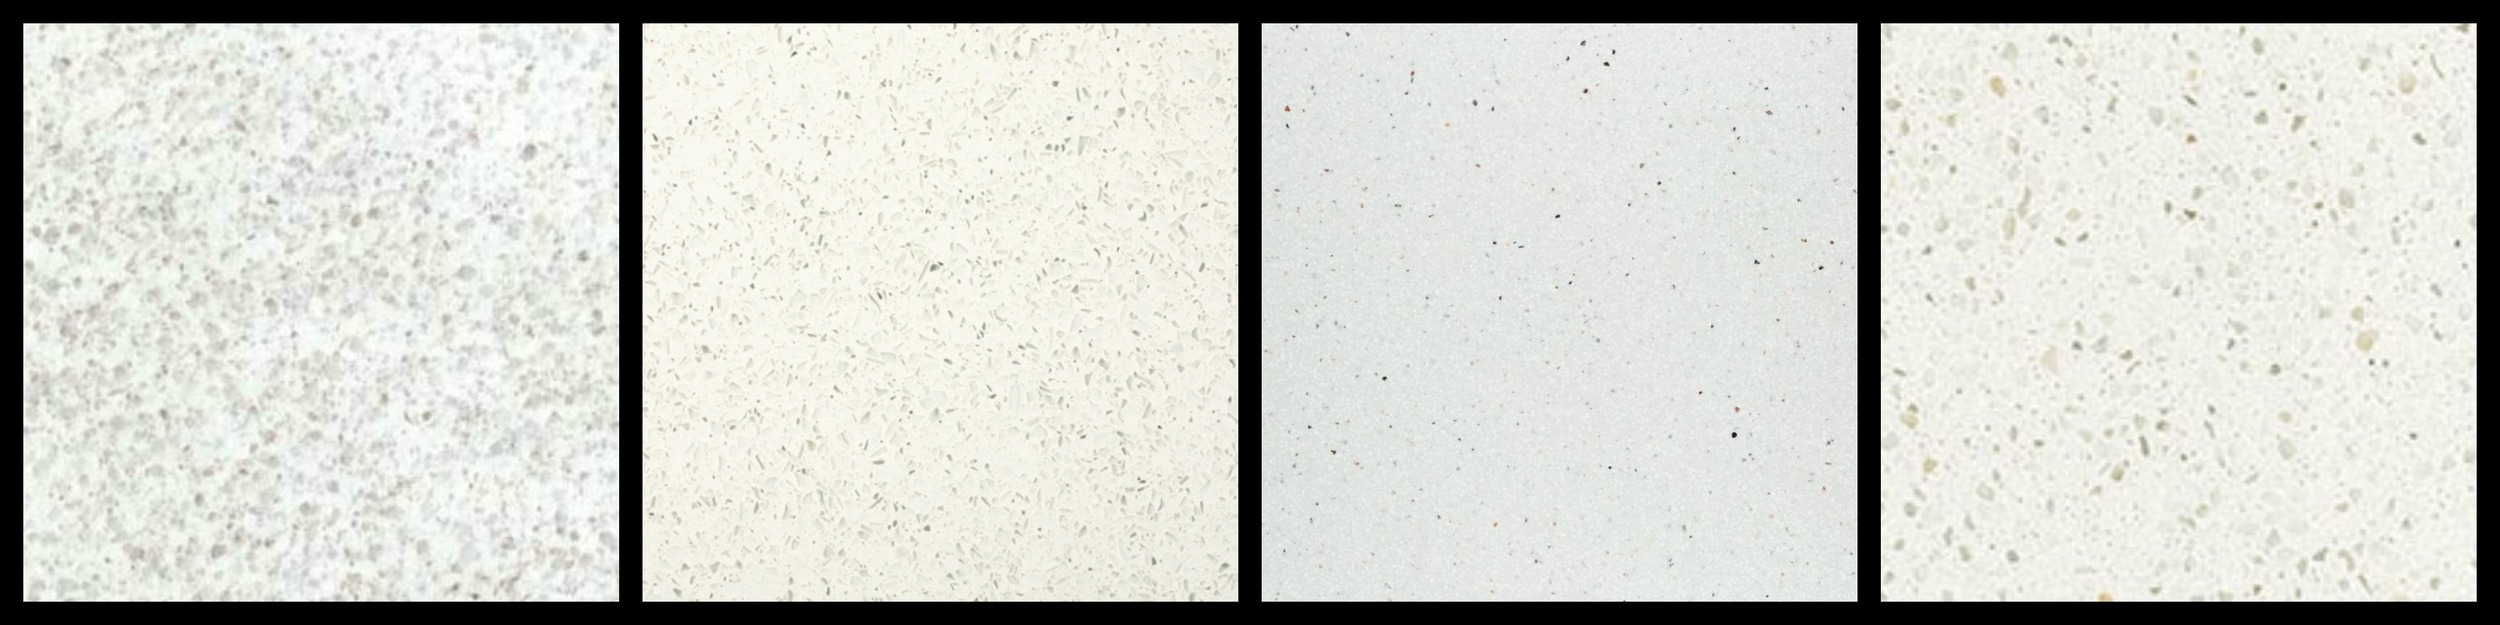 Countertops Comparison